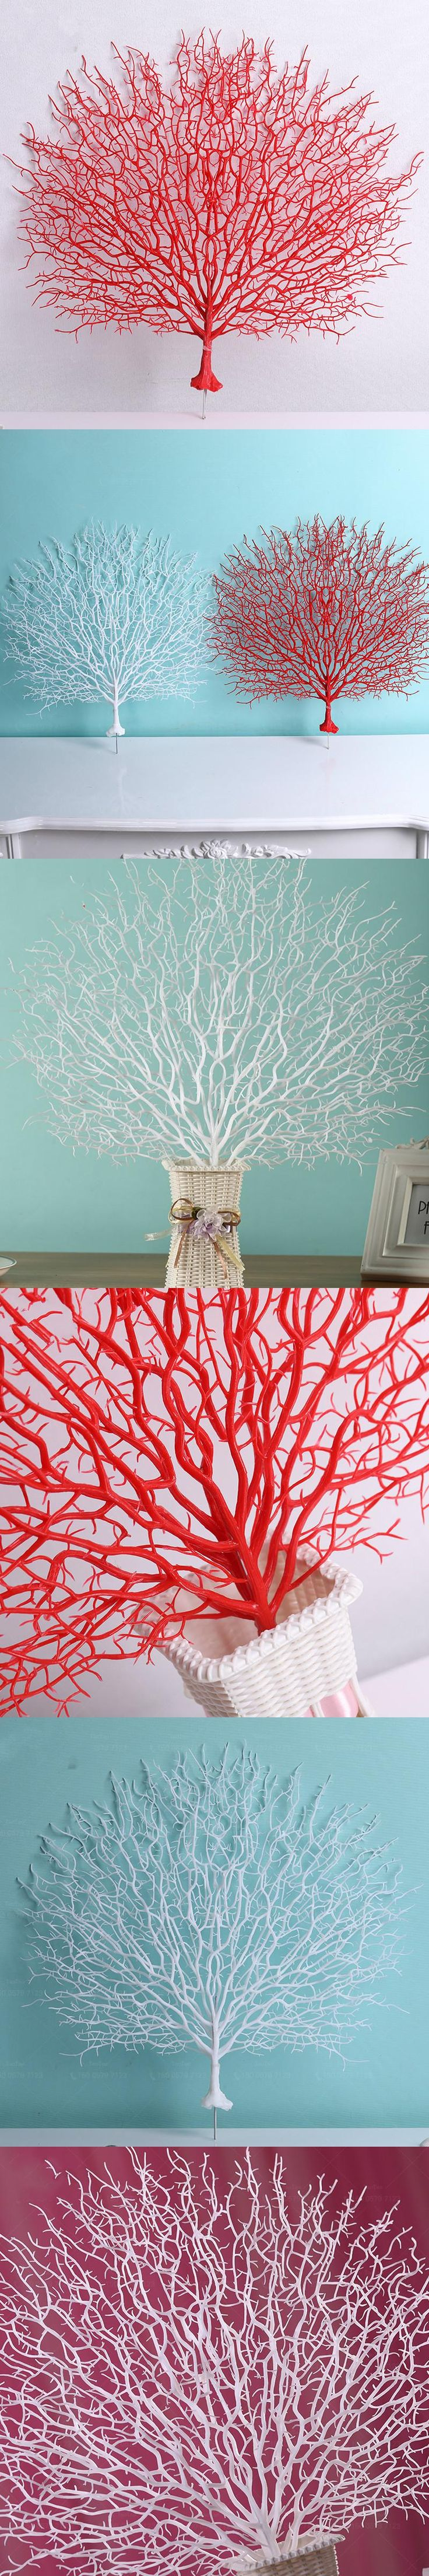 Artificial Tree Branch Peacock Coral Branch Plants The Wedding Home Decoration Plastic Adornment Photography Props Home Decor